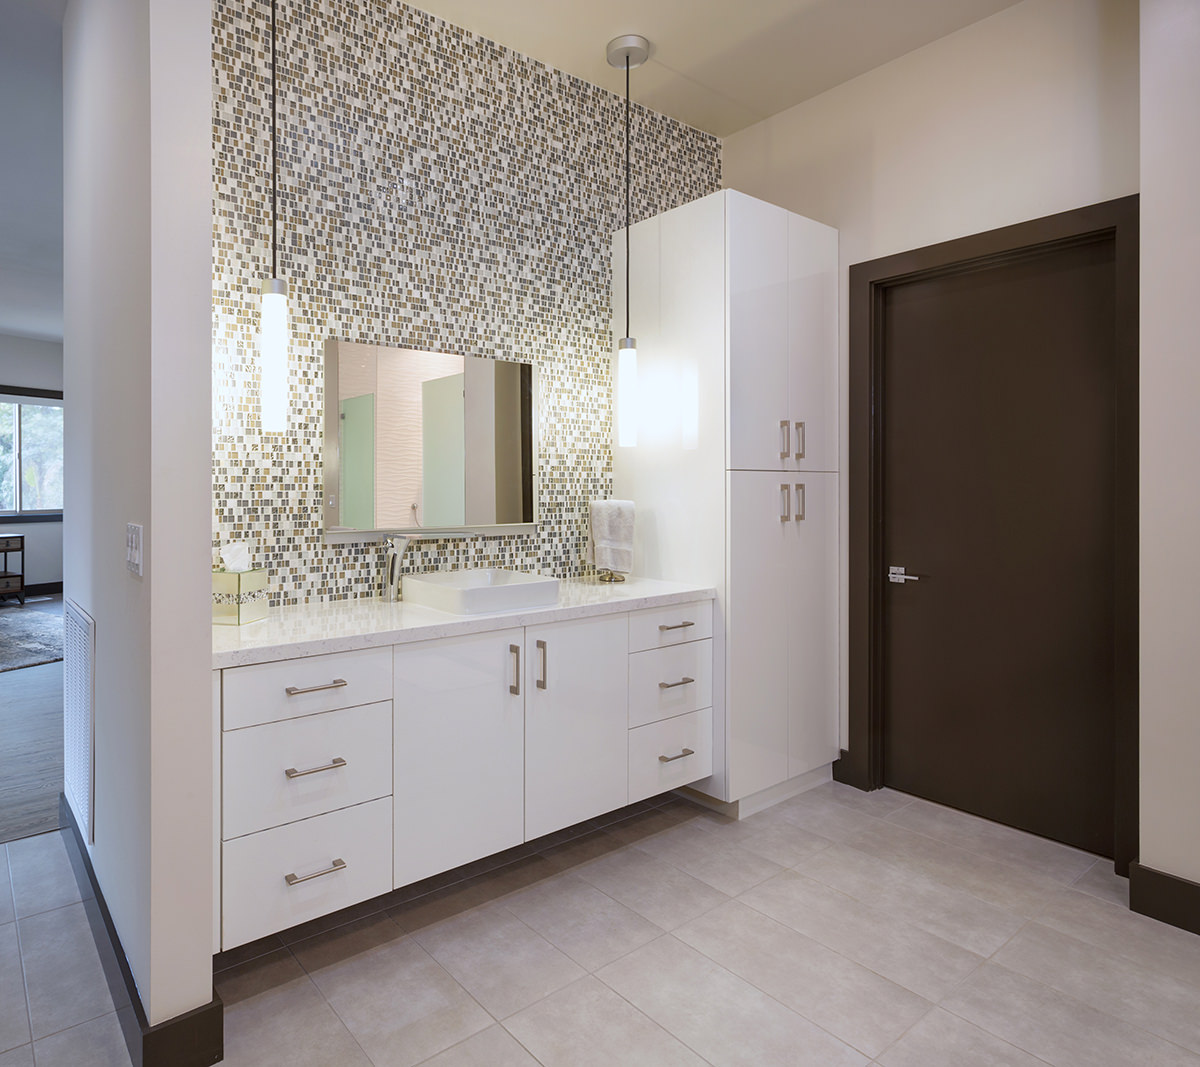 bathroom-interior-design-los-altos-california-ktj-design-co-9.jpg